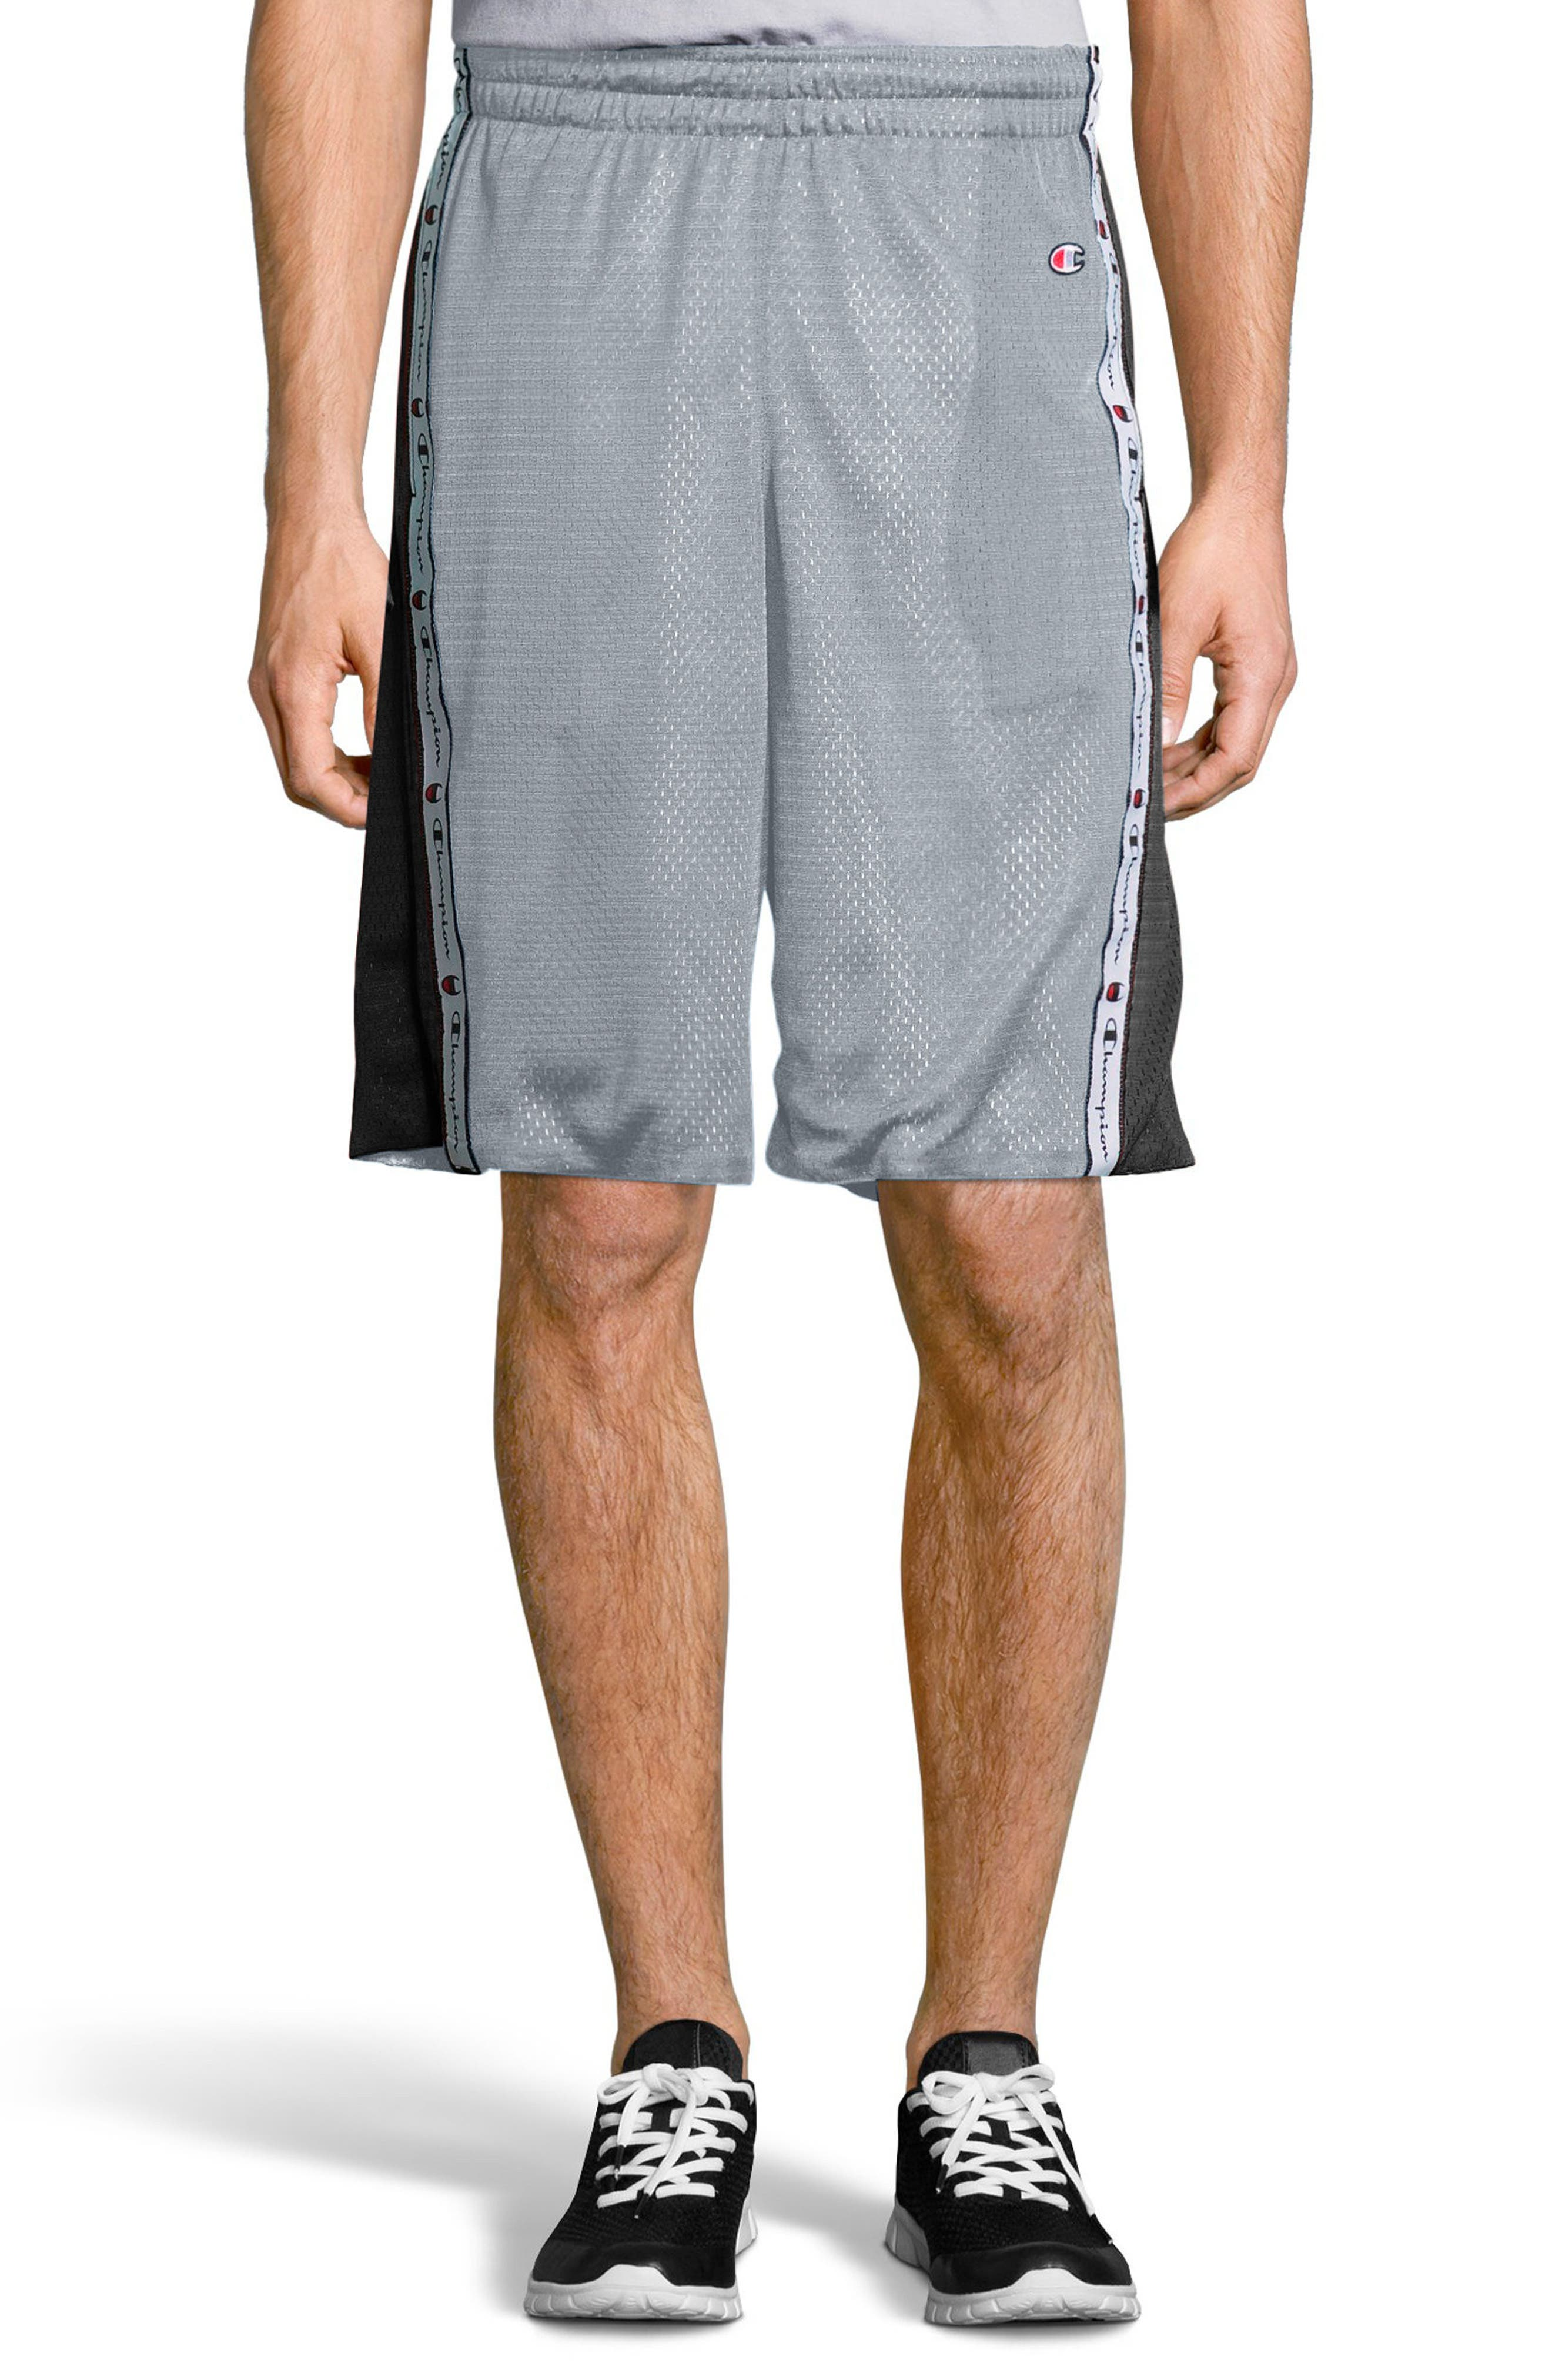 Reversible Mesh Shorts,                         Main,                         color, Silverstone/ Black